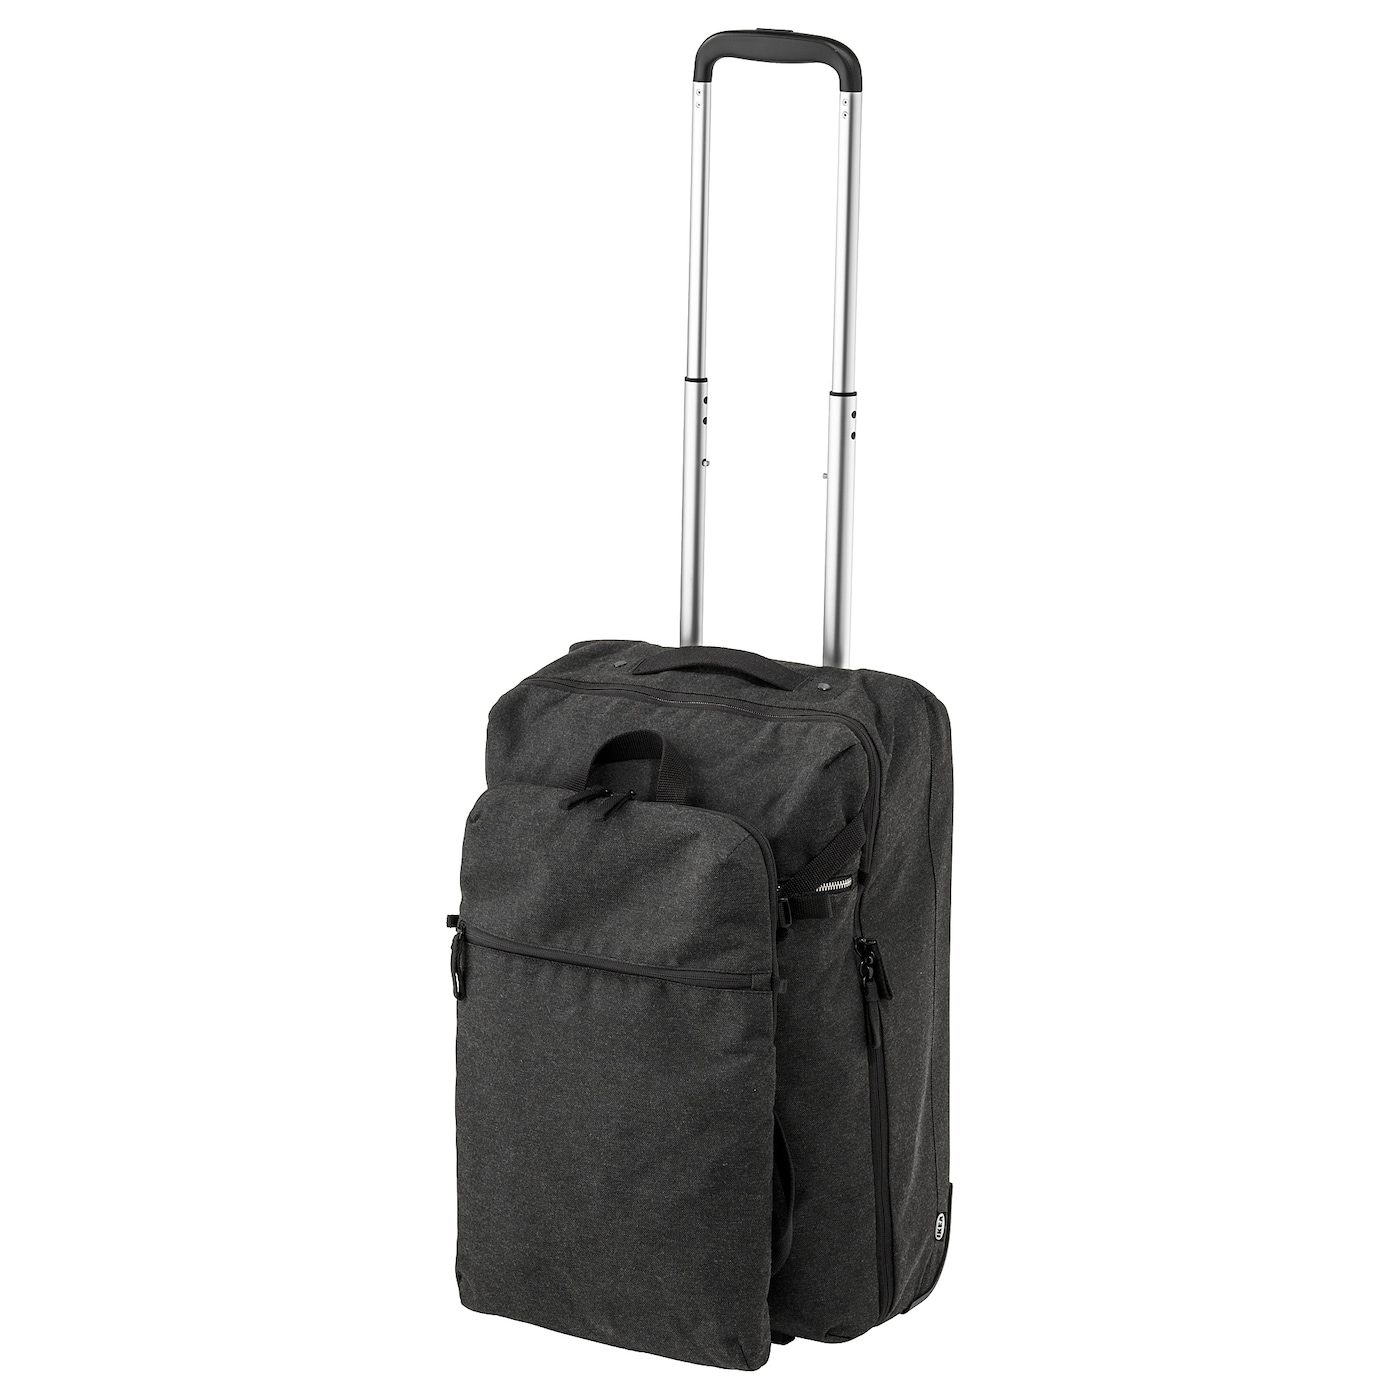 IKEA FÖRENKLA cabin bag on wheels and backpack